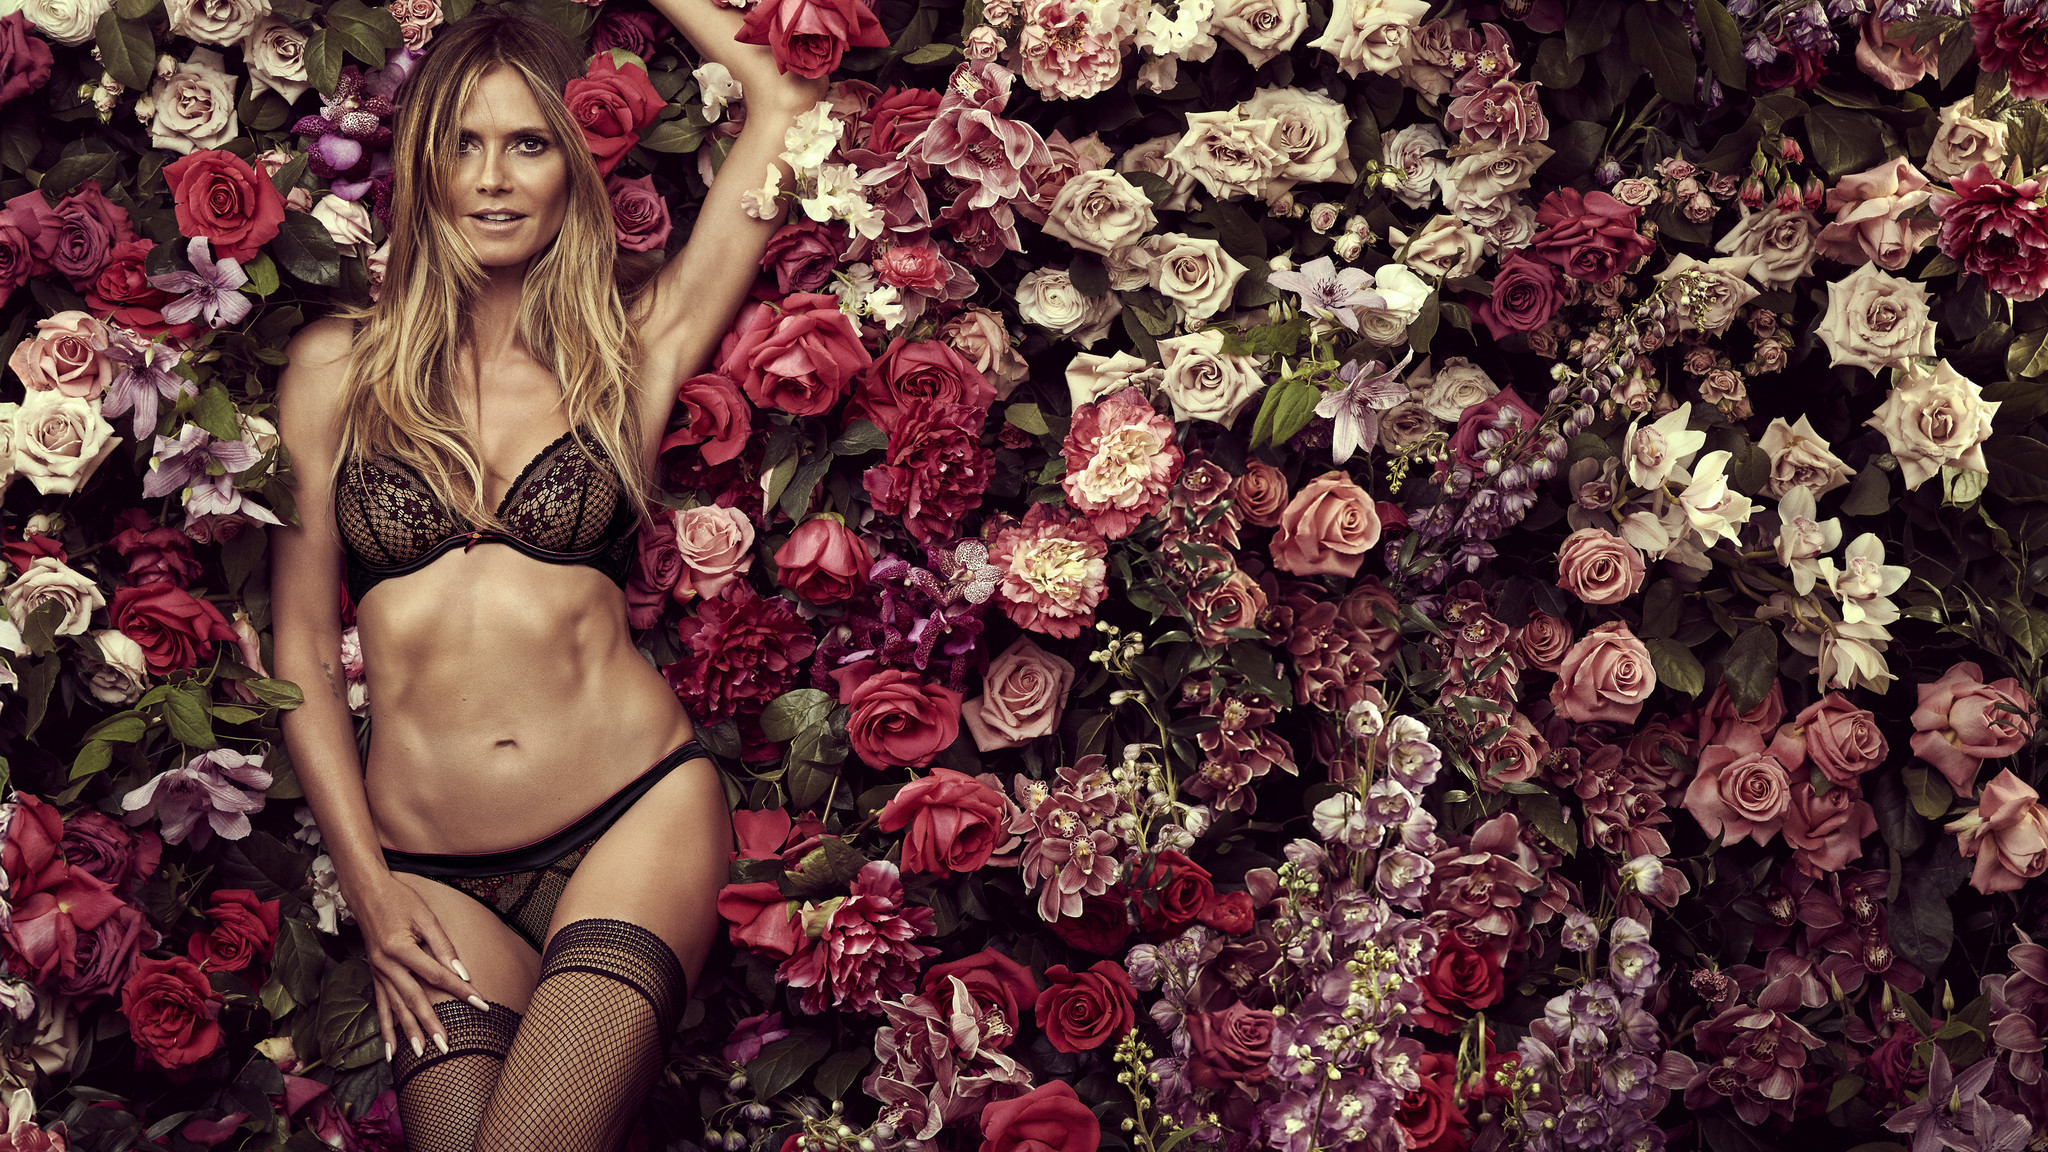 Heidi Klum says fit and lace are important factors for her intimate apparel line called Heidi Klum Intimates.